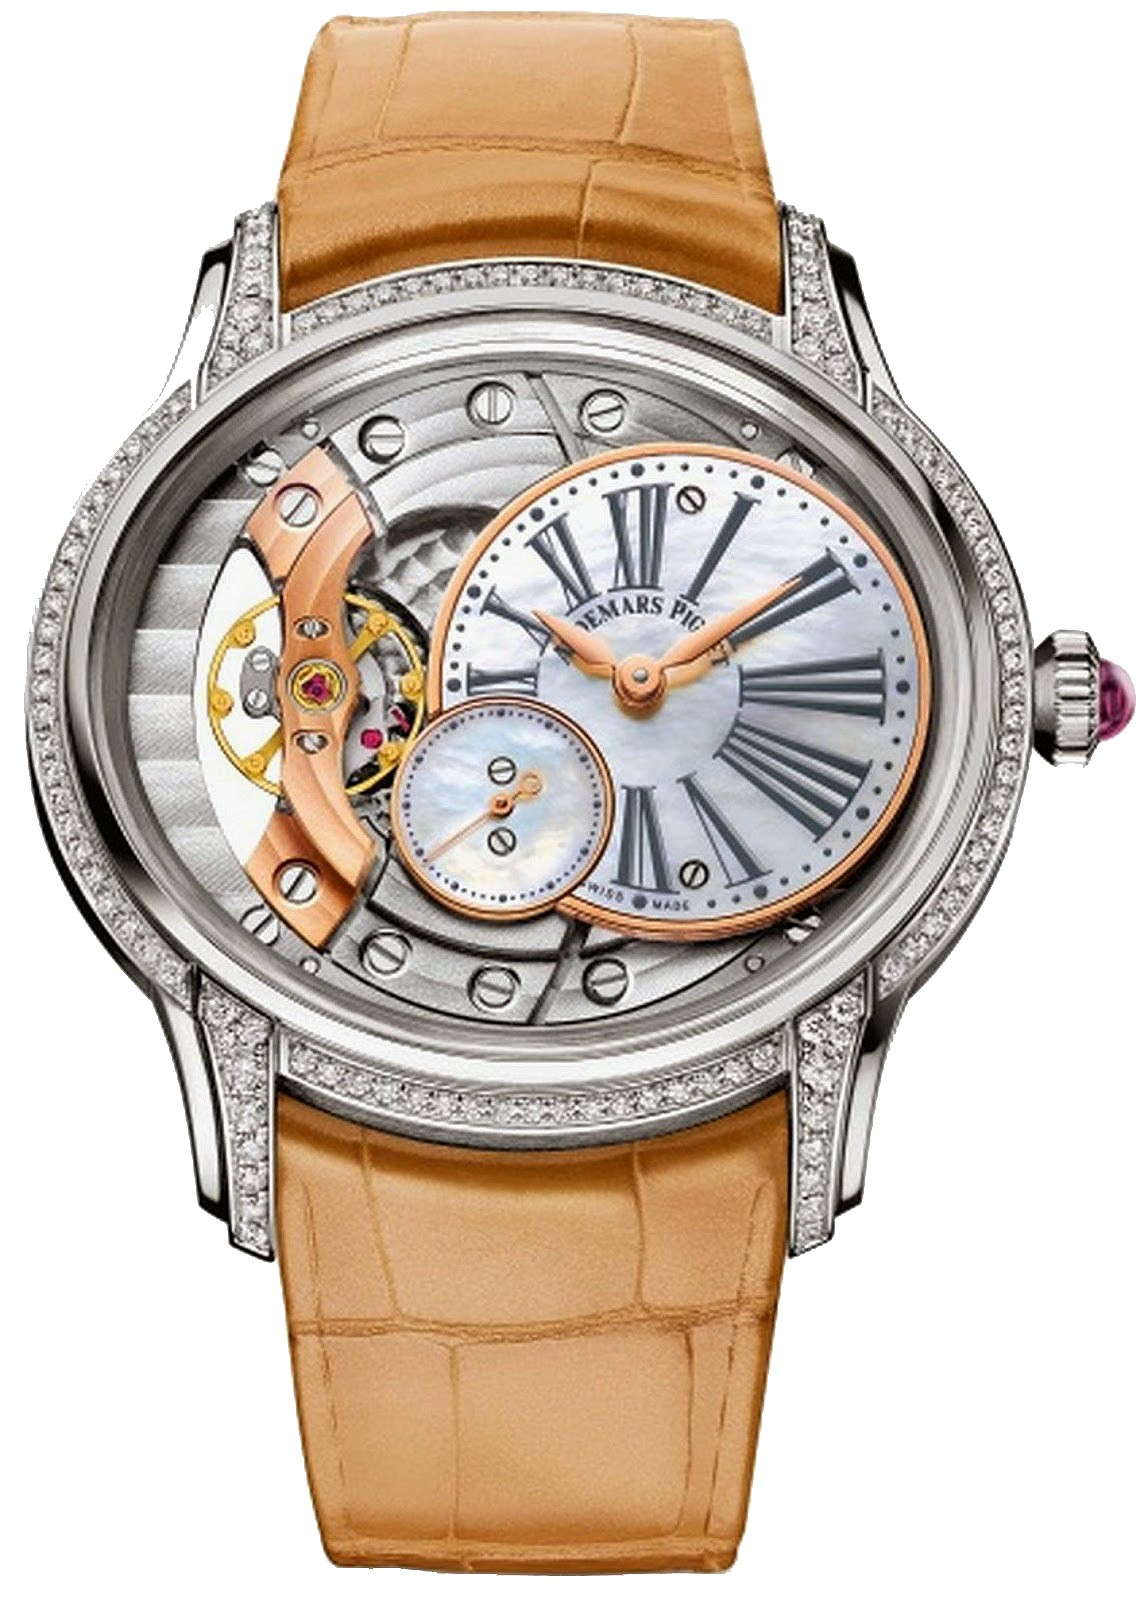 Audemars Piguet Millenary Ladies Hand Wound in White Gold with Diamond Bezel